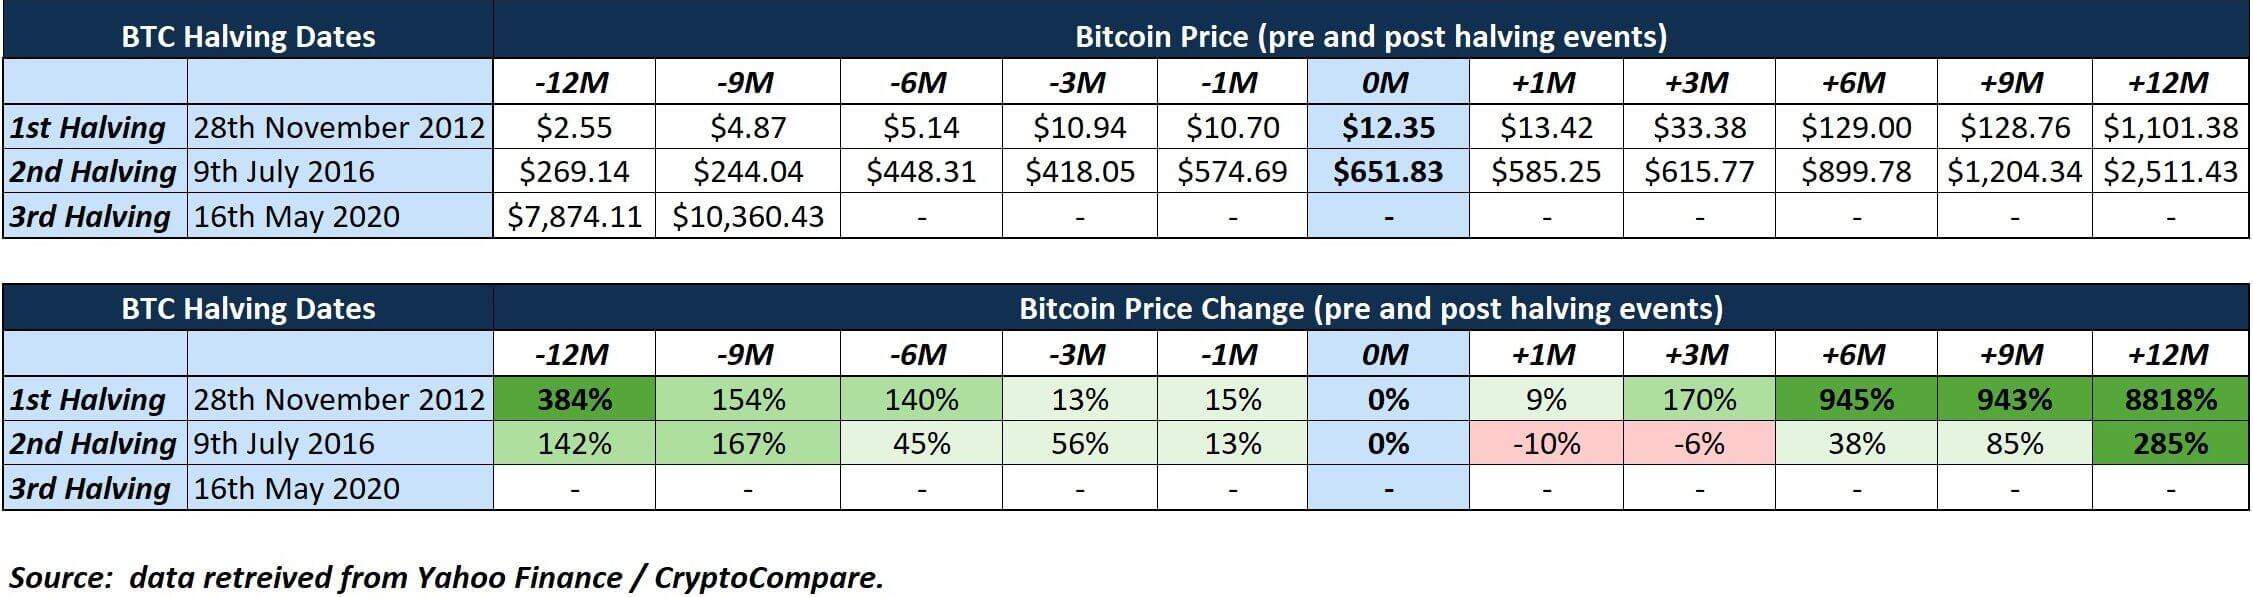 Bitcoin Halving Dates / Bitcoin Price May Drop After Halving Historical Data Shows Coindesk ...